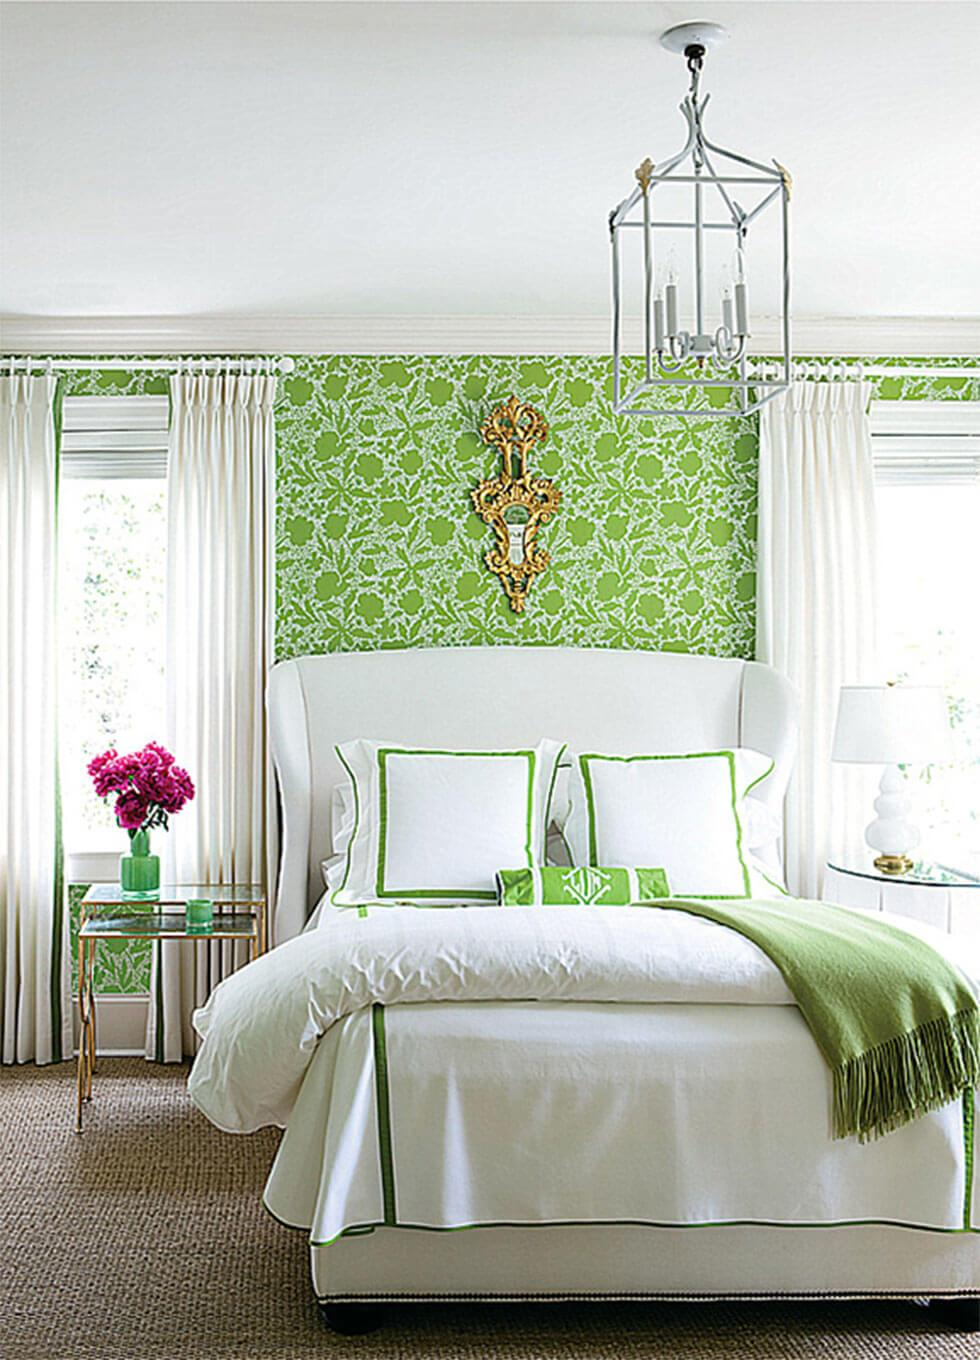 7 Ways To Make A Green Bedroom Look Good Inspiration Furniture And Choice